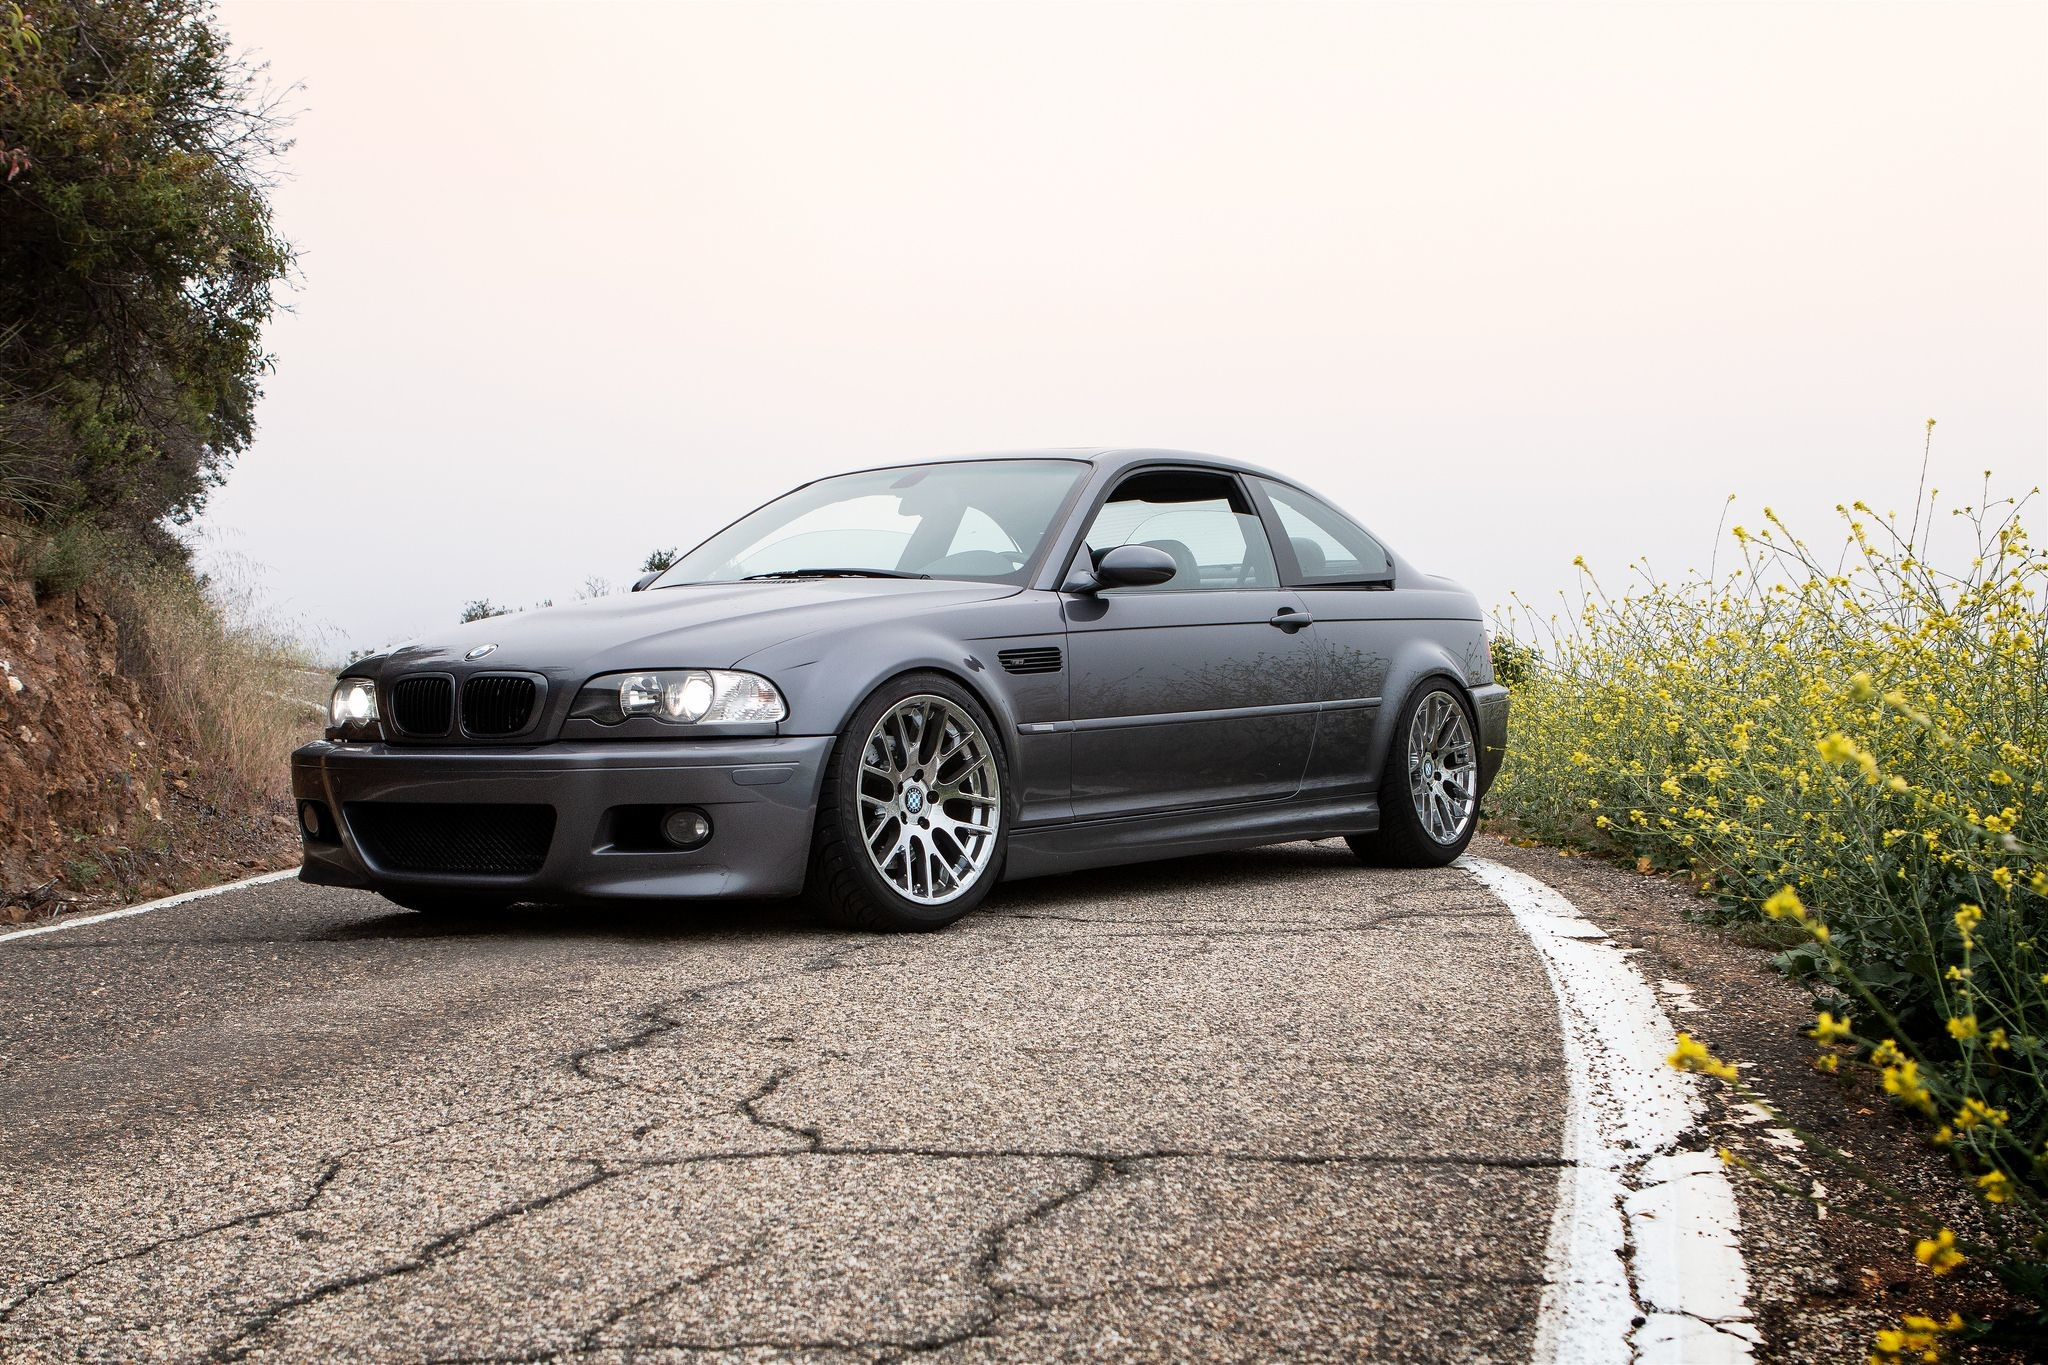 2048x1365 BMW E46 M3 wallpaper